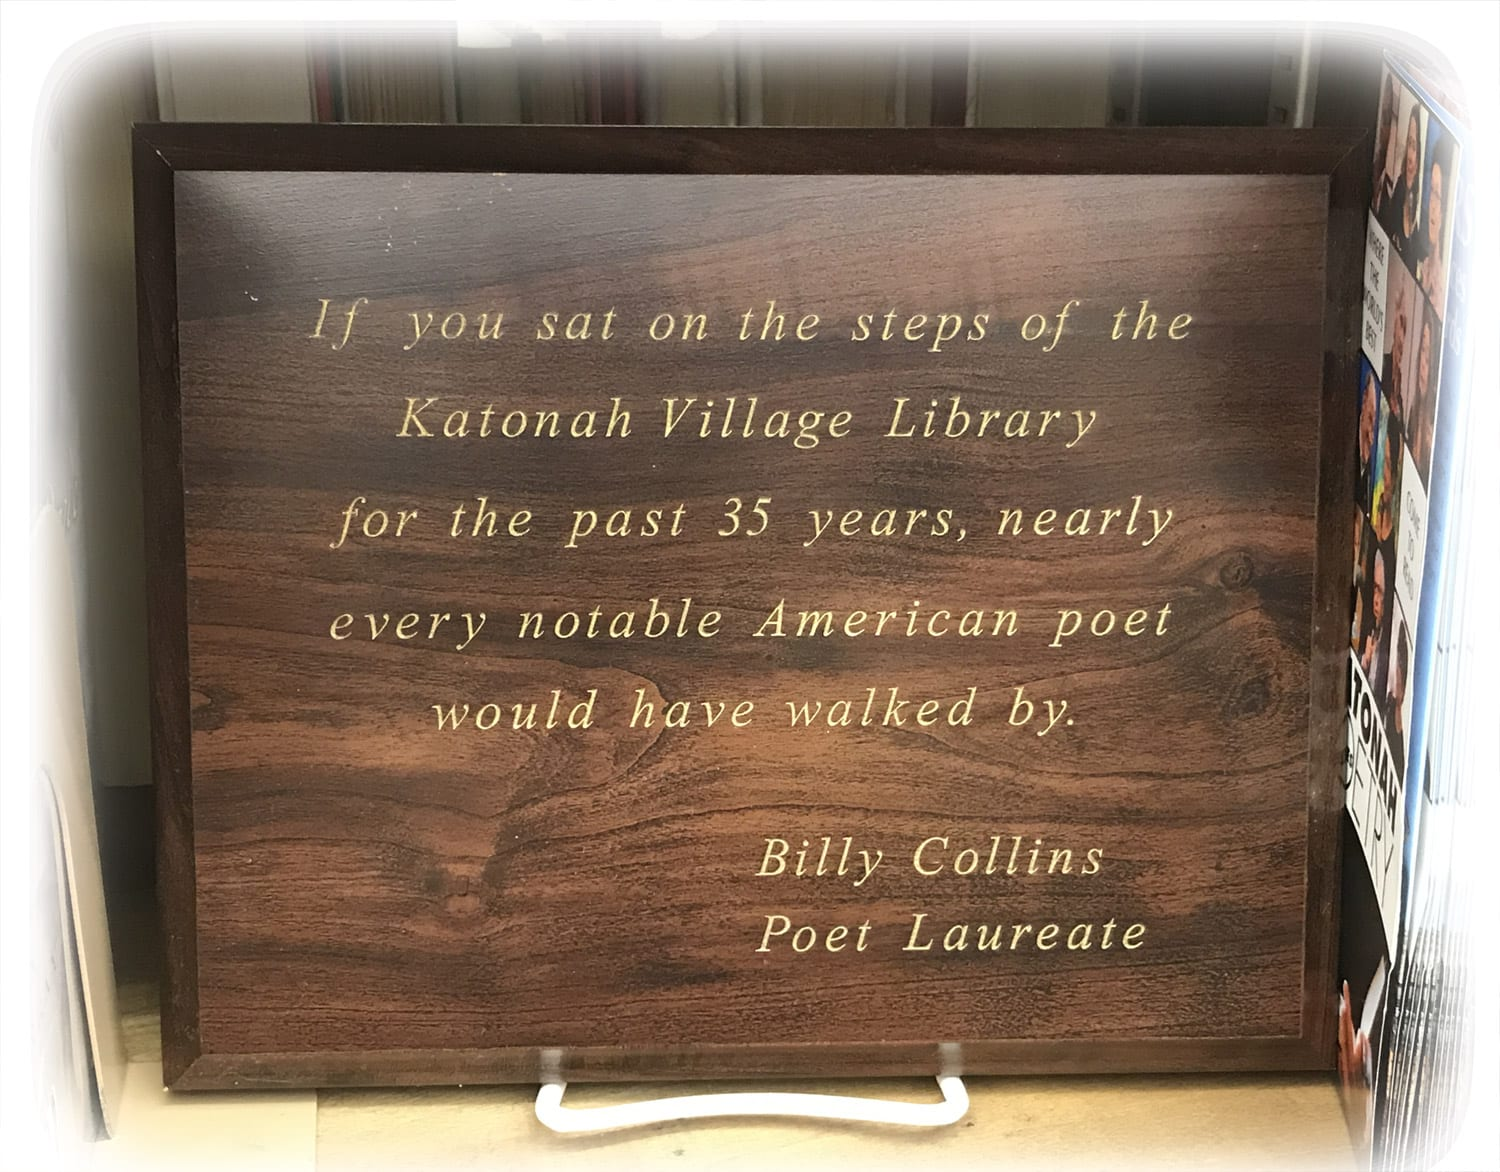 If you say on the steps of the Katonah Village Library for the past 35 years, nearly every notable American poet would have walked by. - Billy Collins, Poet Laureate